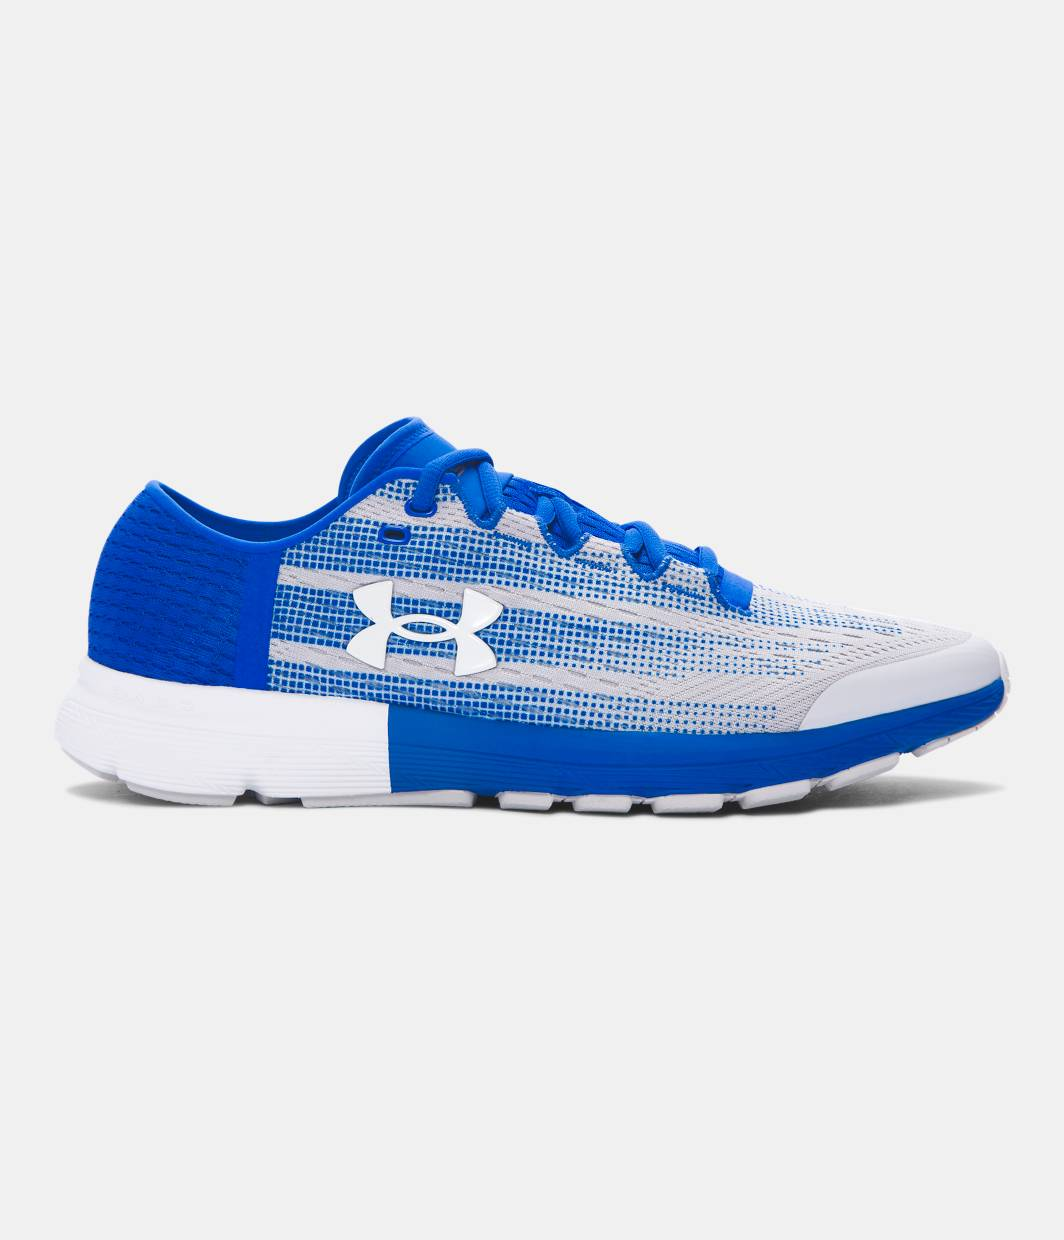 Under Armour - Speedform Velociti - Neutral Mens Running Shoes Online - Glacier Gray/Ultra Blue/White